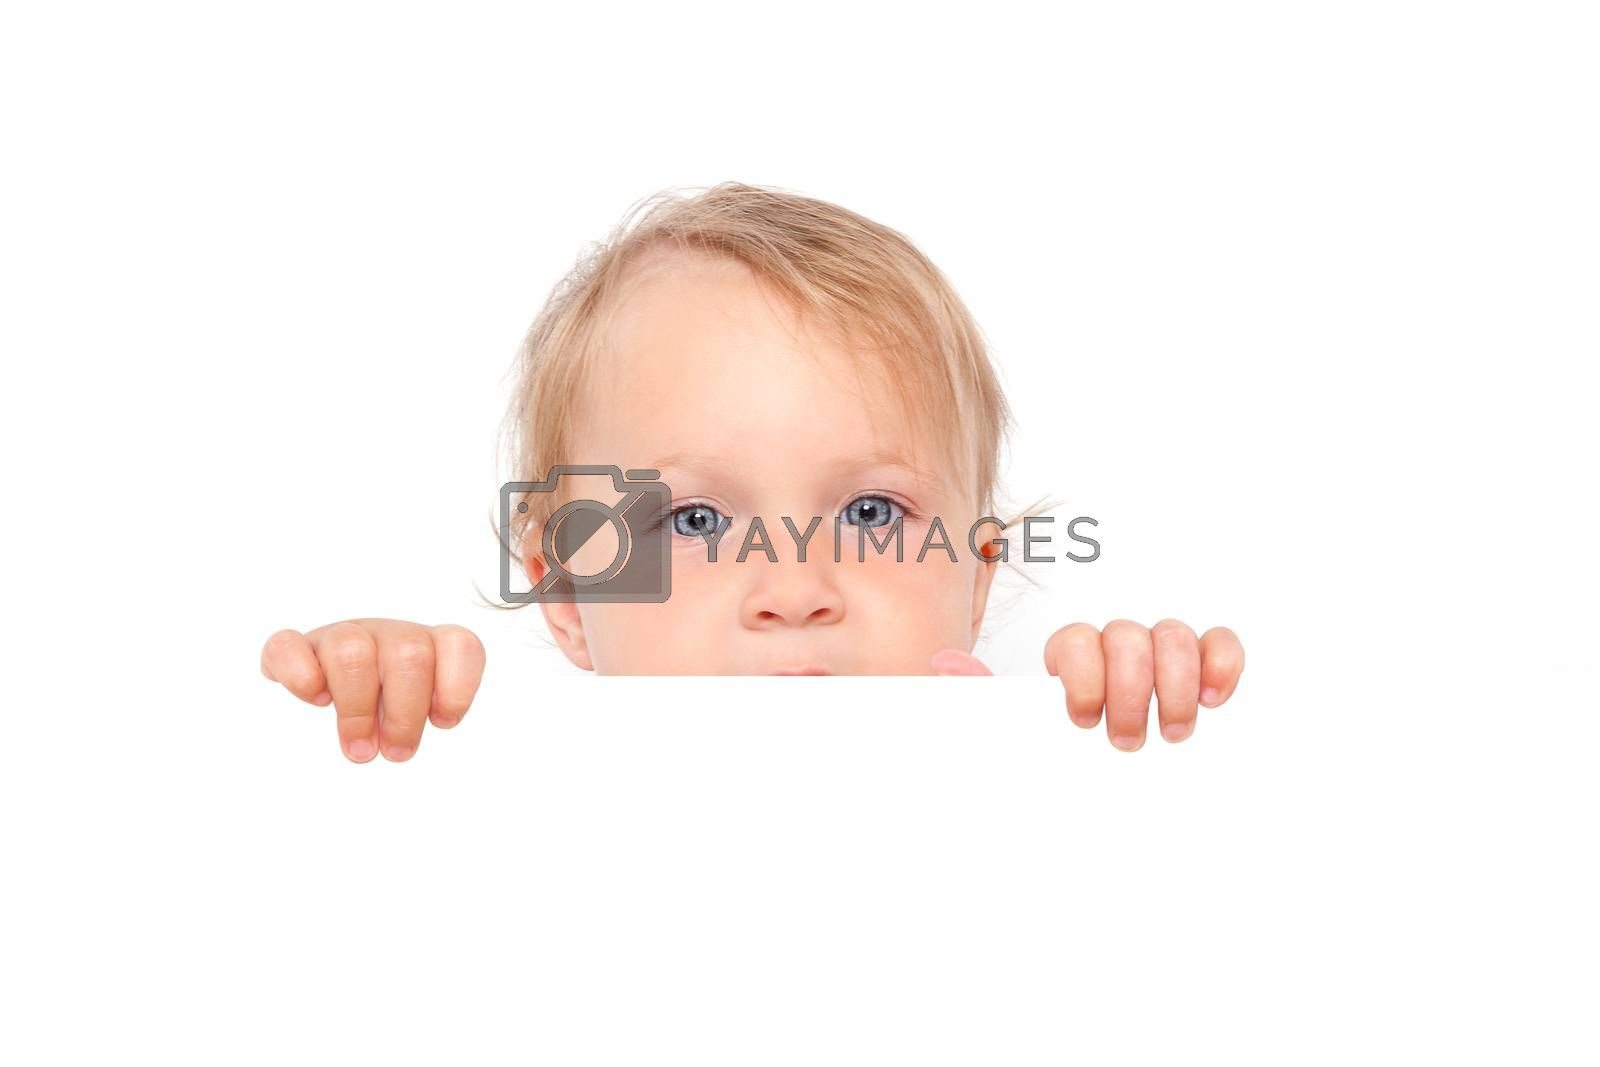 Cute blonde baby girl with big blue eyes looking over white board isolated on white background. Cute curious baby and family concept.